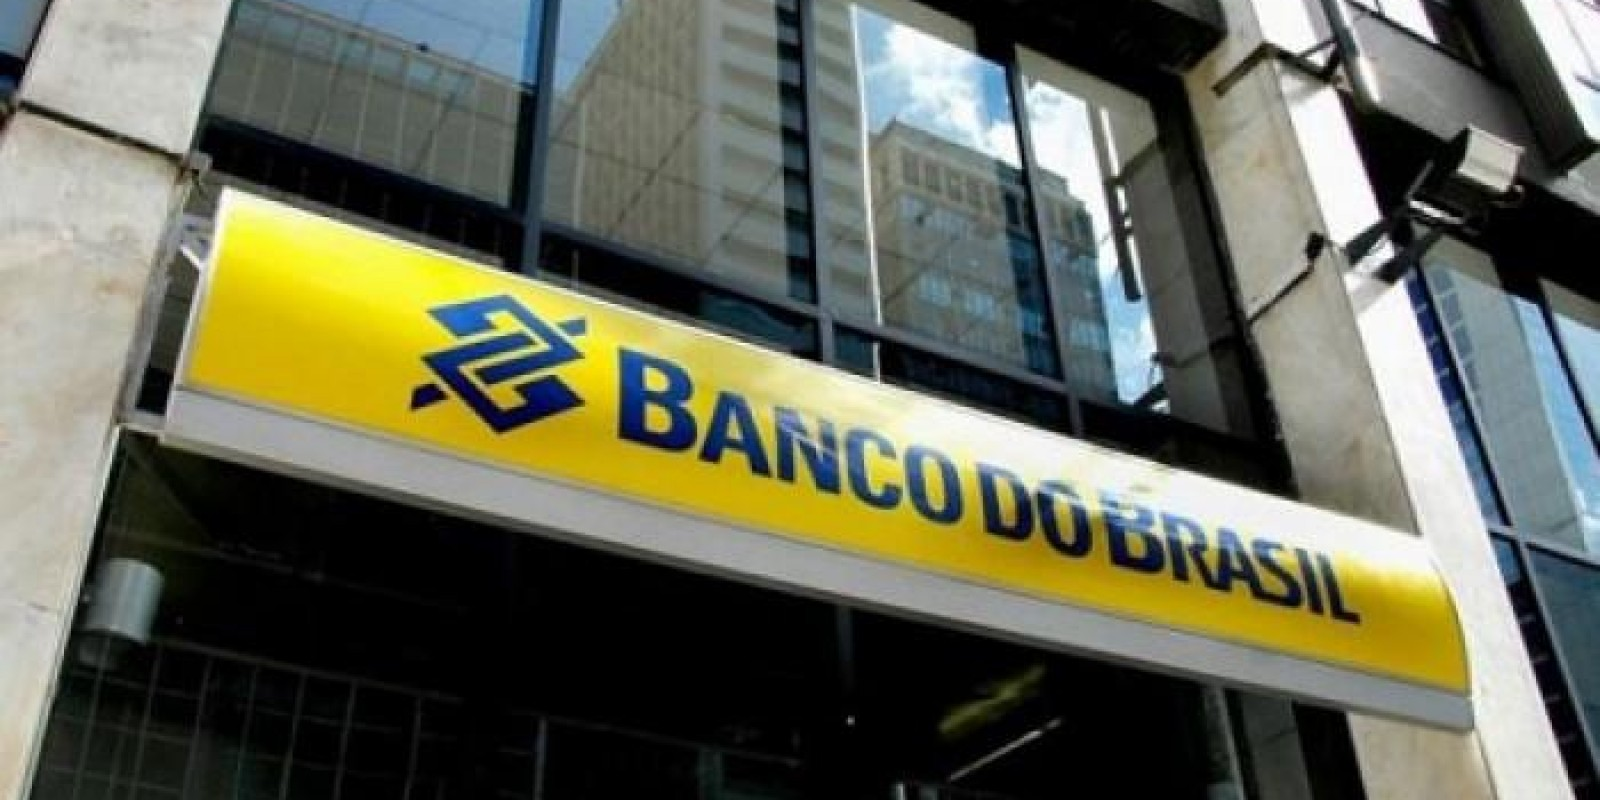 Presidente do Banco do Brasil afirma que estatal deveria ser privatizada